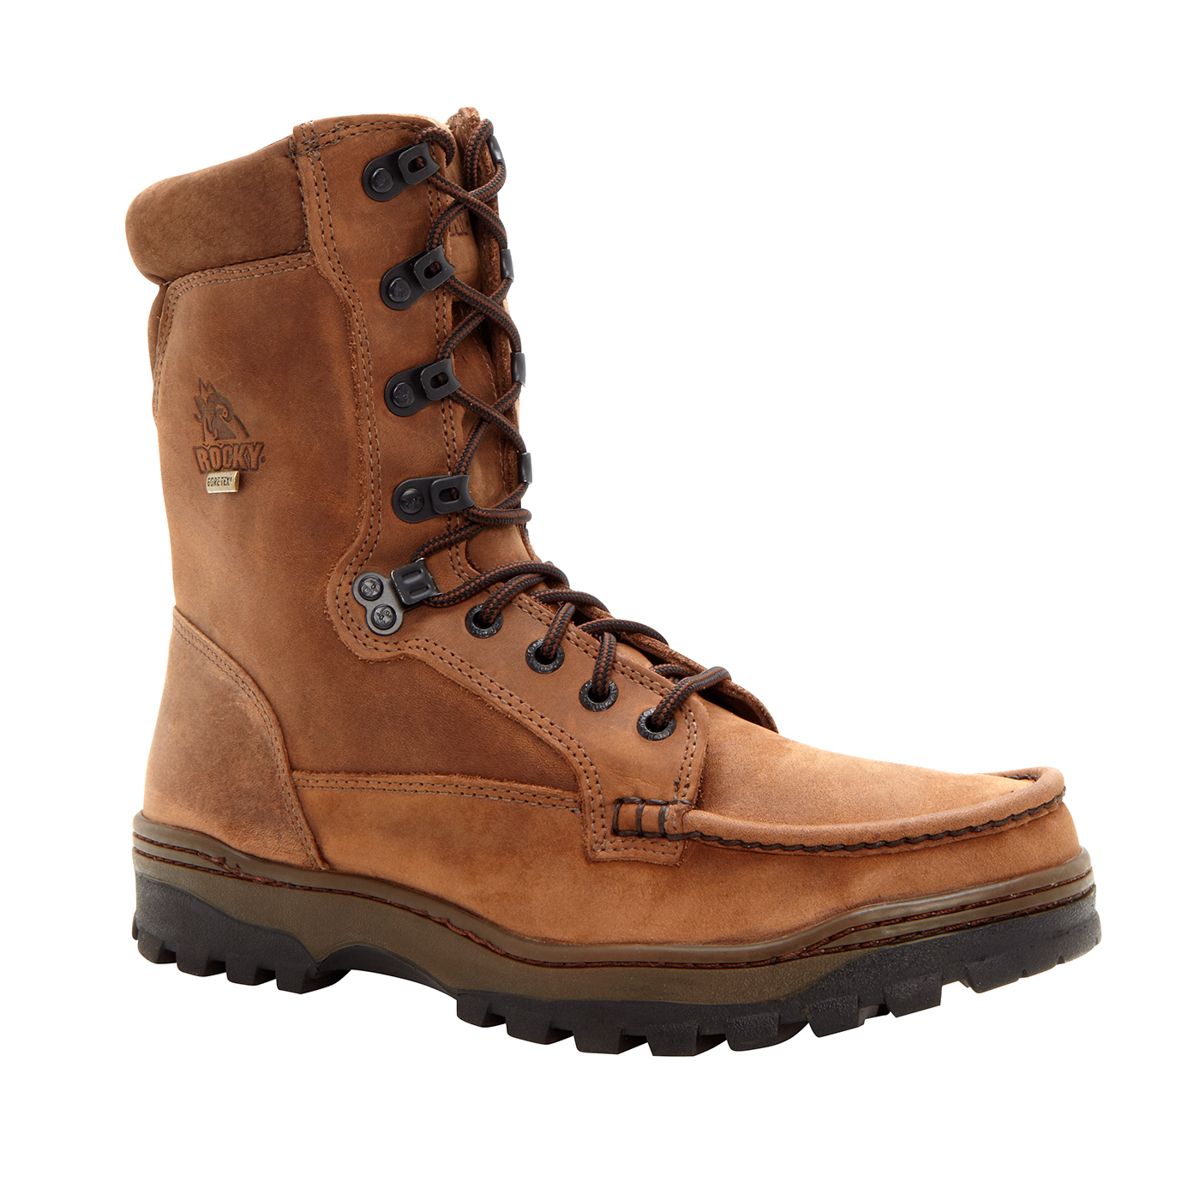 rocky outback mens light brown leather 8in goretex hiking